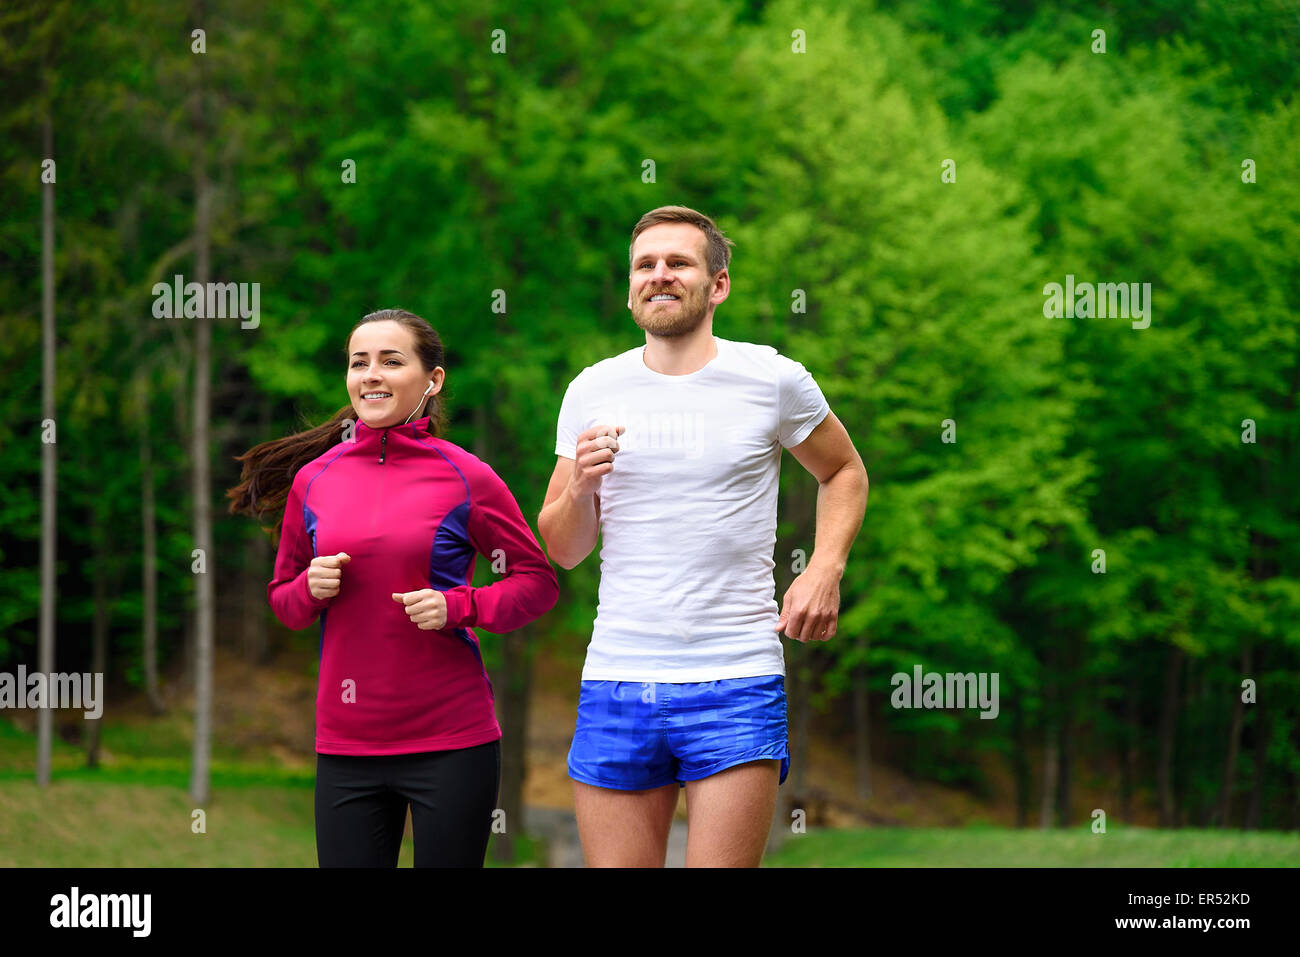 Couple running in park. - Stock Image